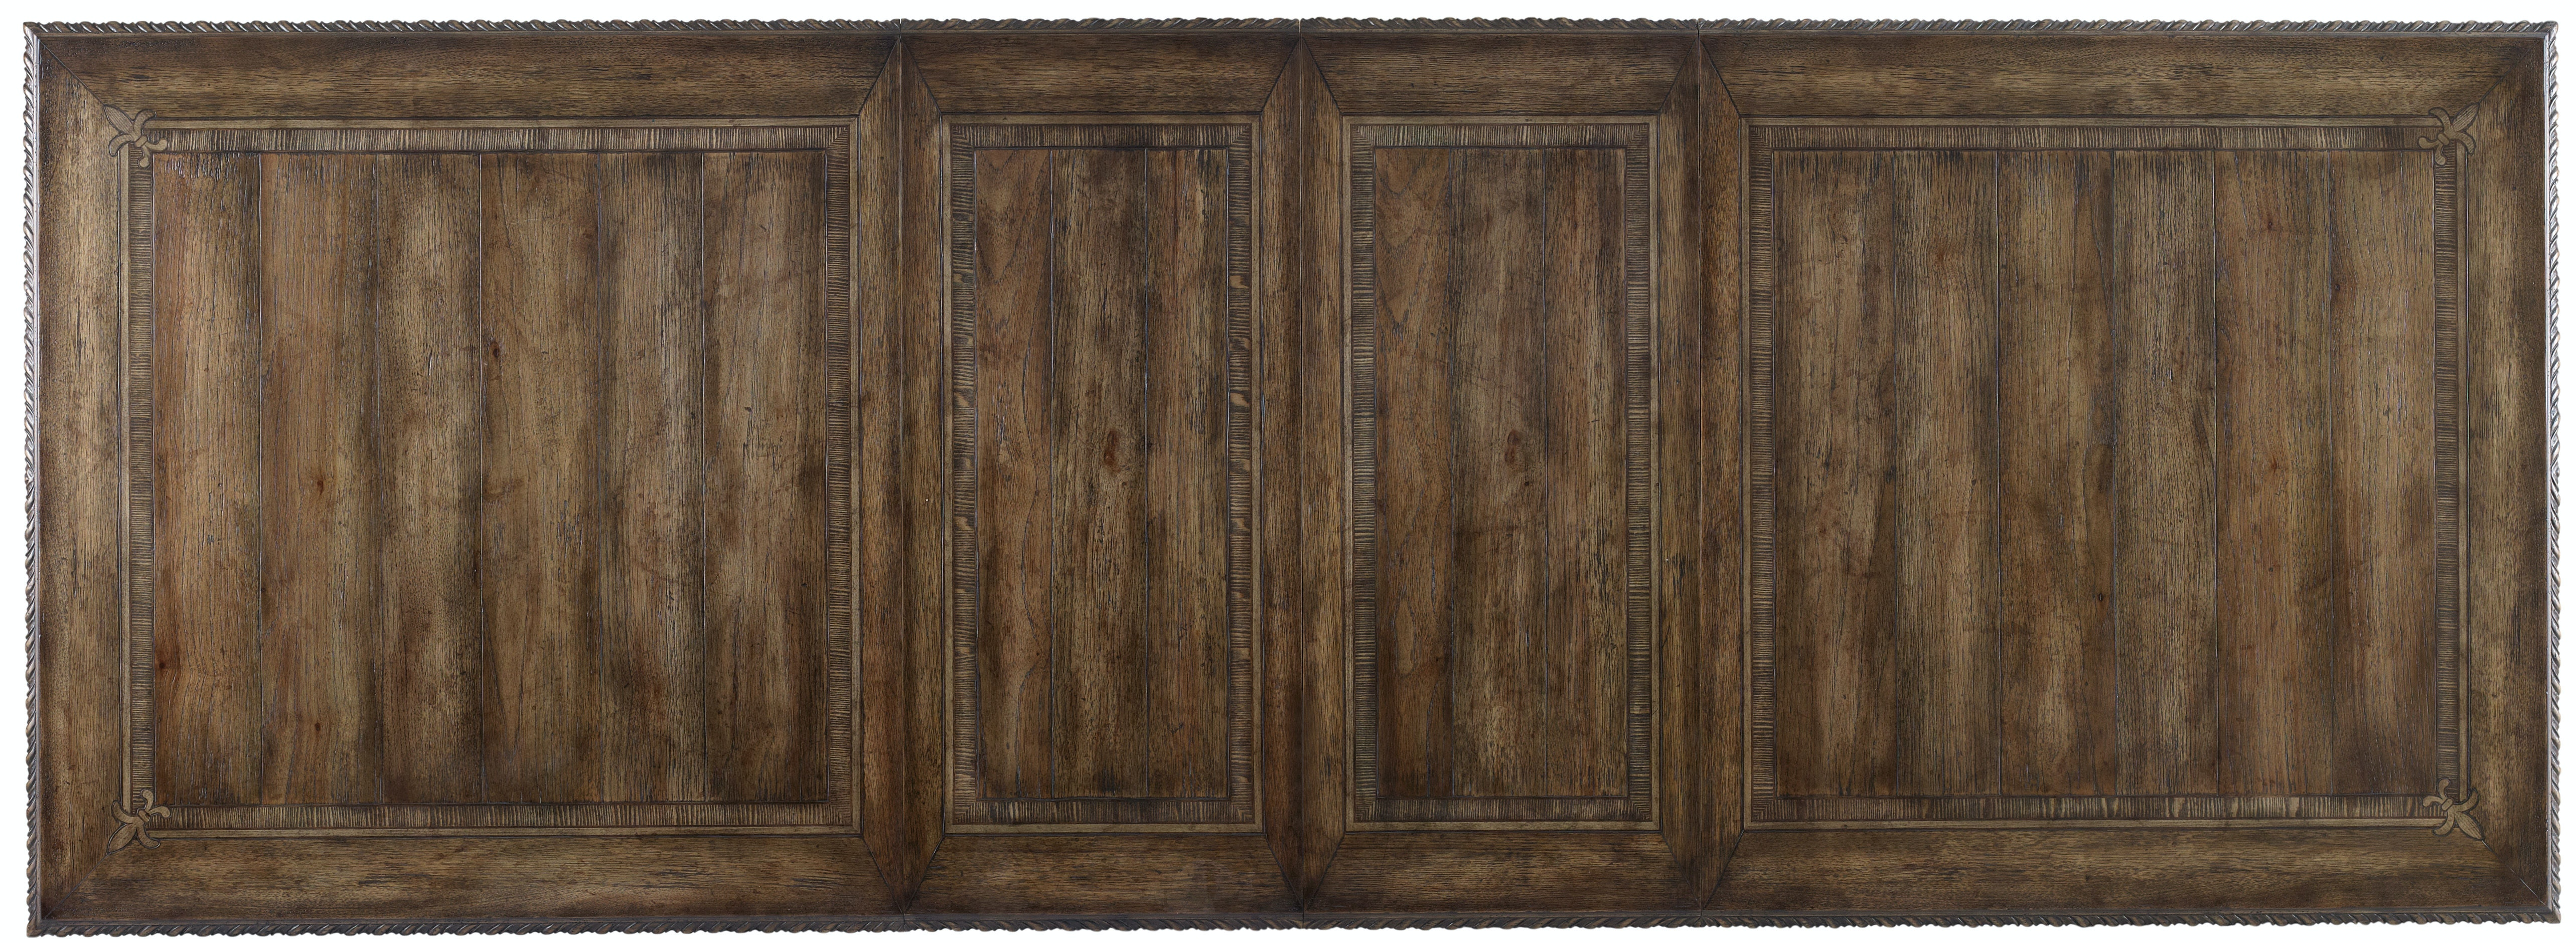 Hooker Furniture Rhapsody Rectangle Dining Table 5070 75207